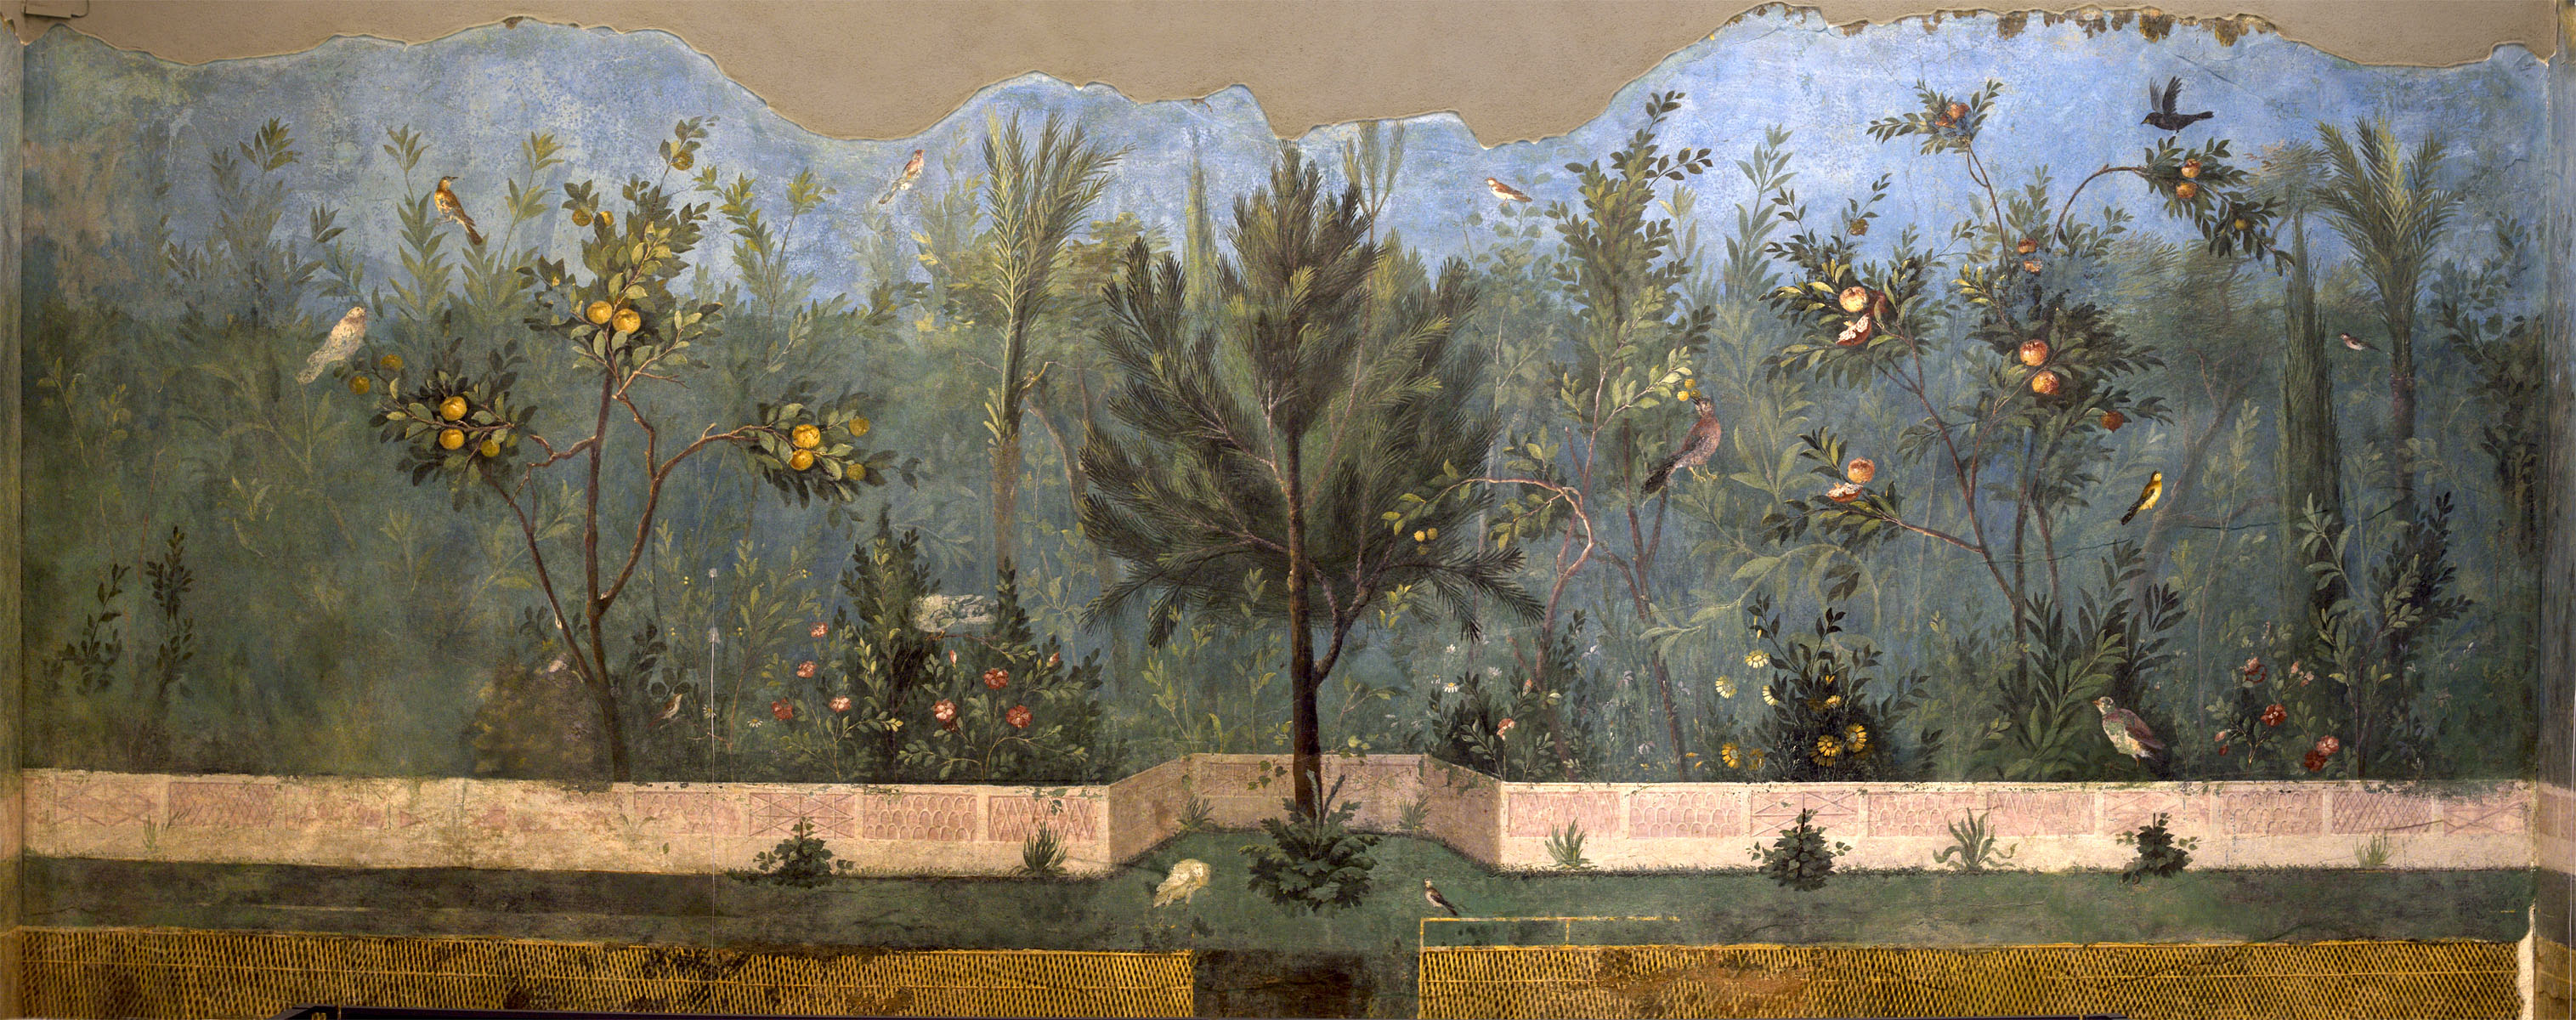 Wall fresco painting. From the subterranean hall of the Villa of Livia at Prima Porta. 40—20 BCE. Rome, Roman National Museum, Palazzo Massimo alle Terme